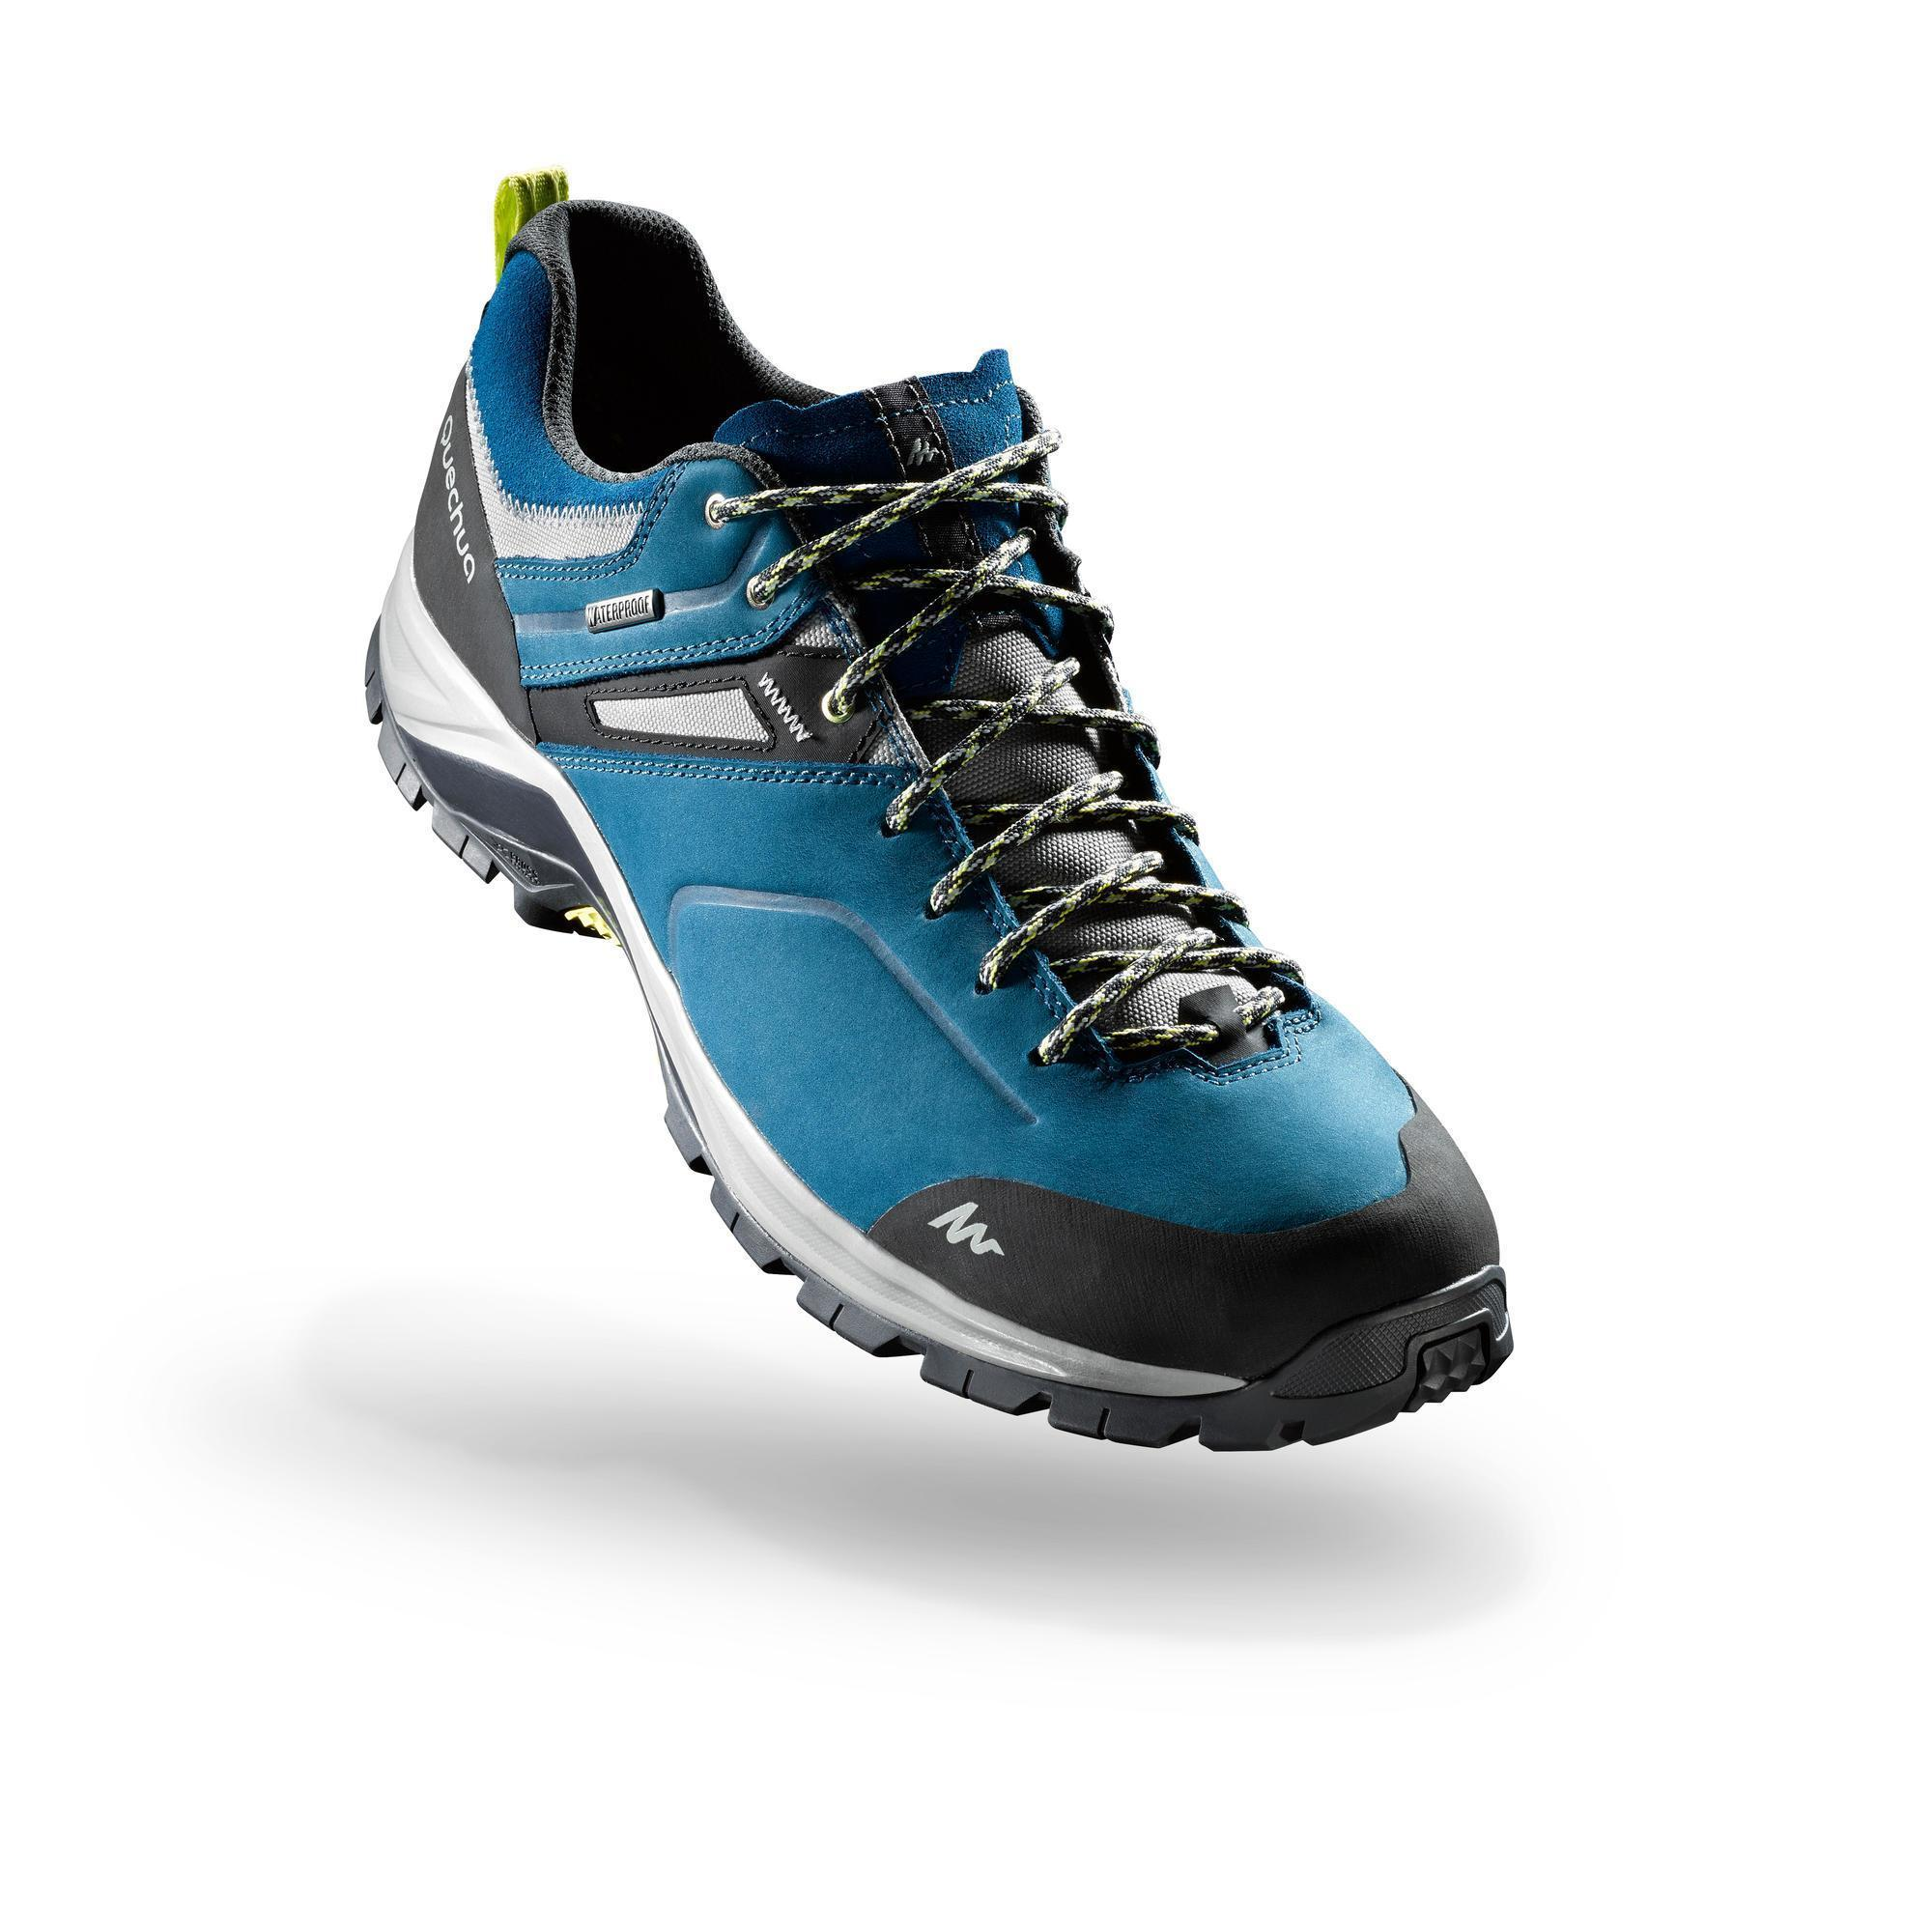 Mh500 Waterproof Men S Hiking Shoes Blue Quechua